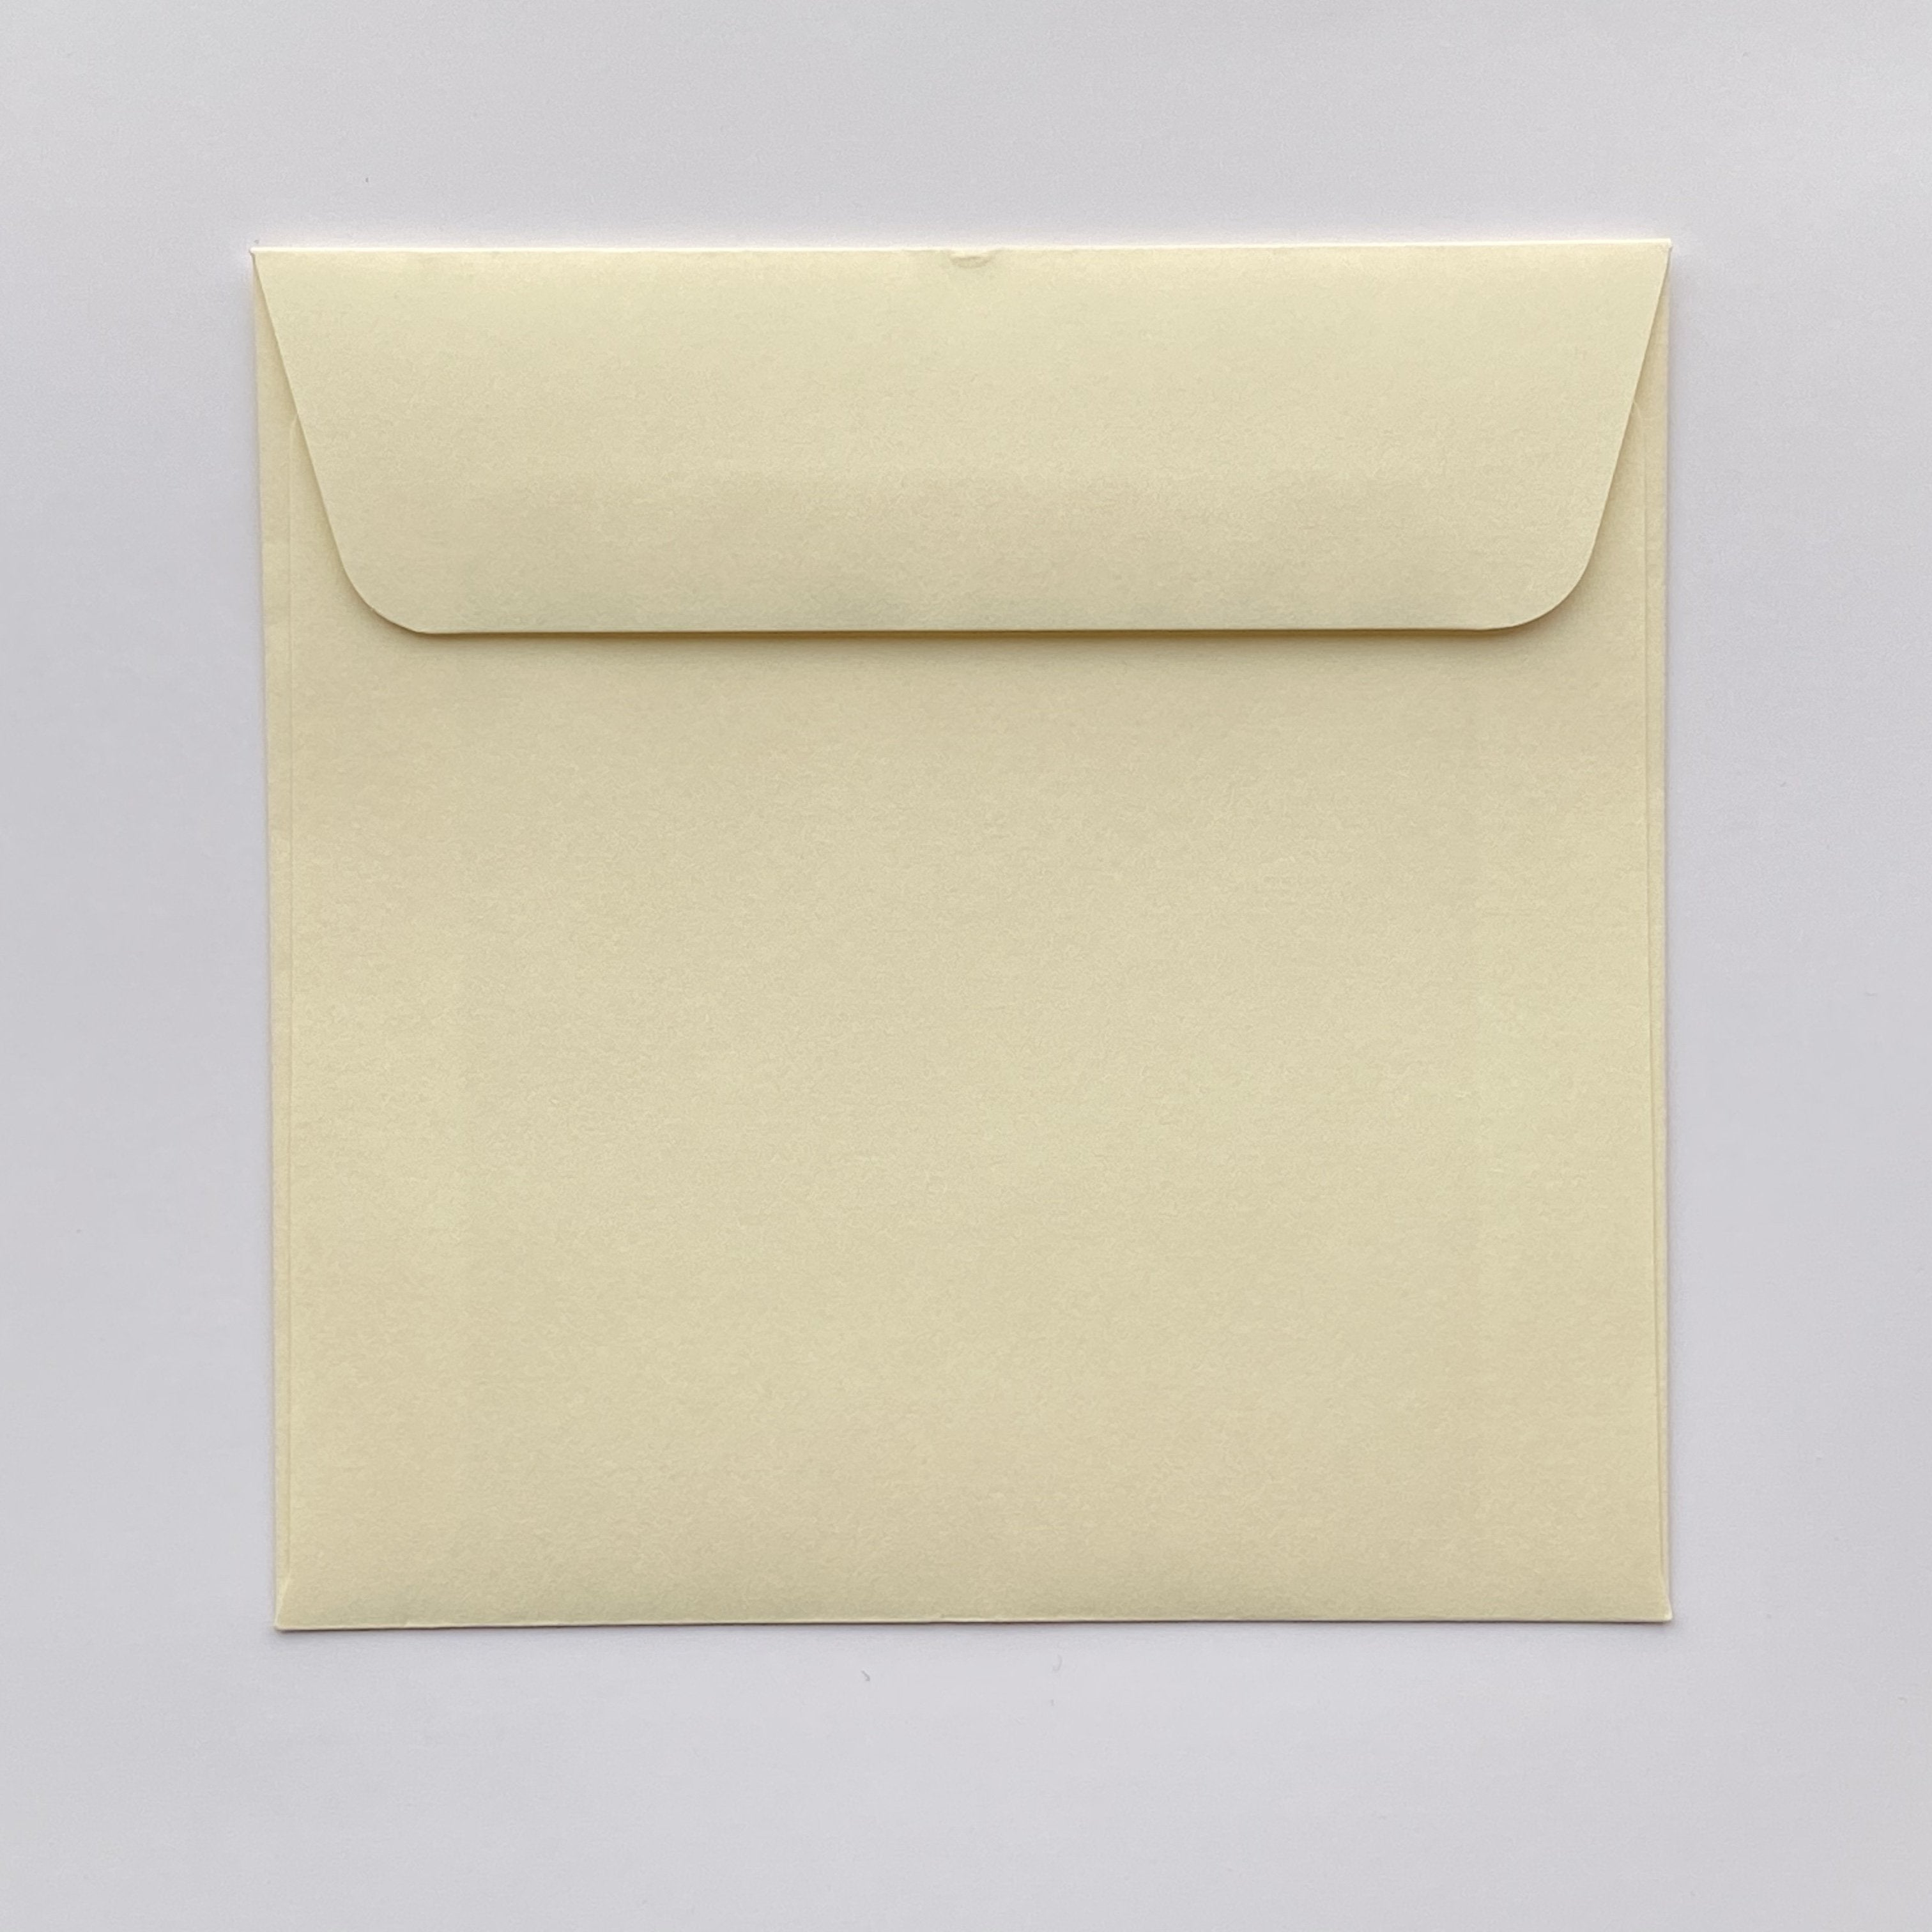 155mm square coloured envelopes